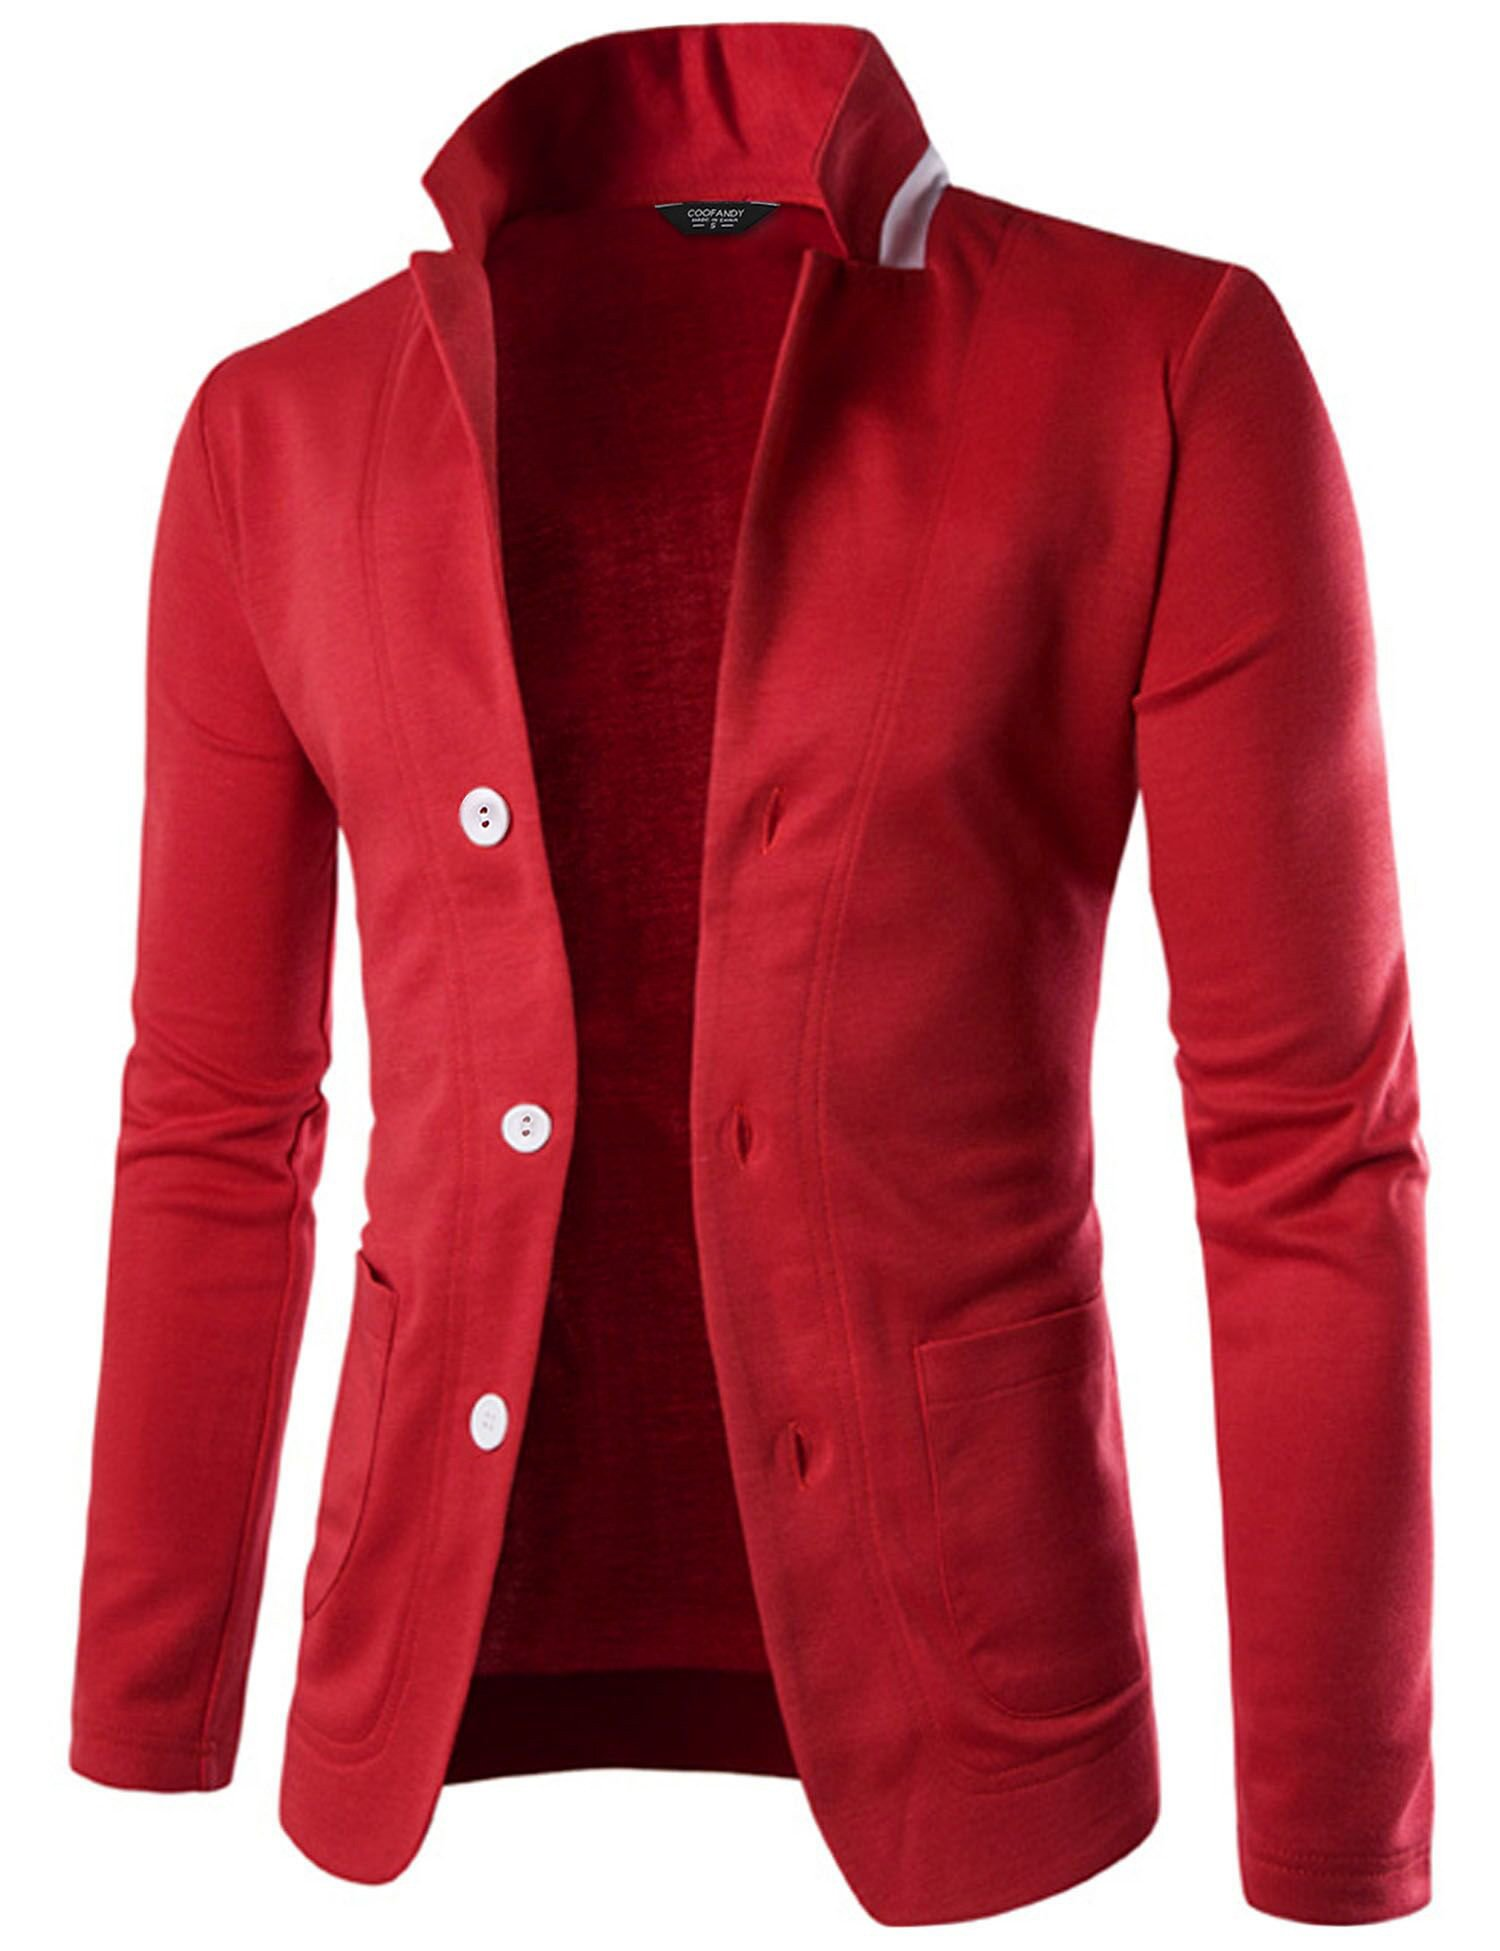 Coofandy Mens Casual Slim Fit Blazer 3 Button Suit Sport Coat Lightweight Jacket,Red,Medium